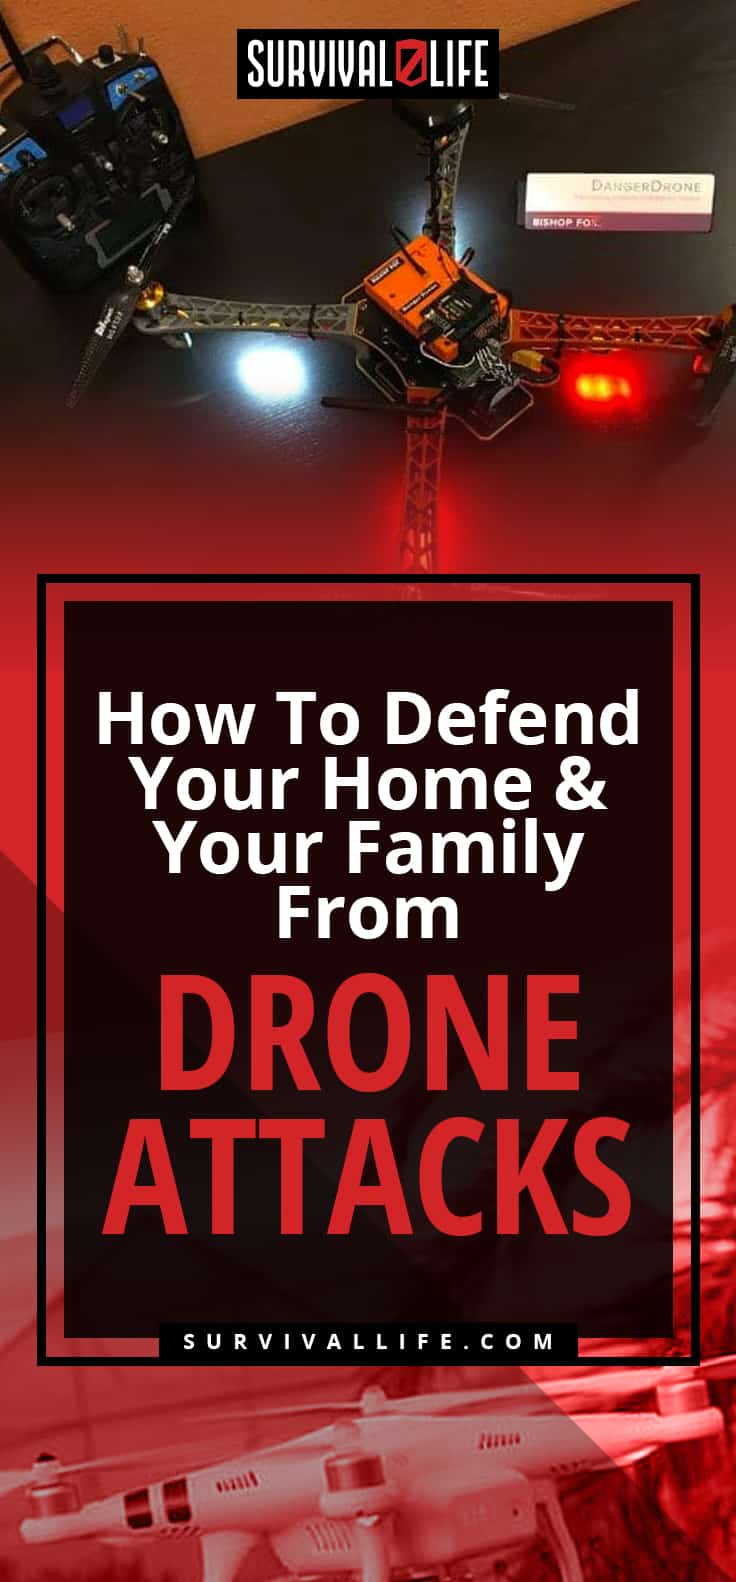 How To Defend Your Home And Your Family From Drone Attacks